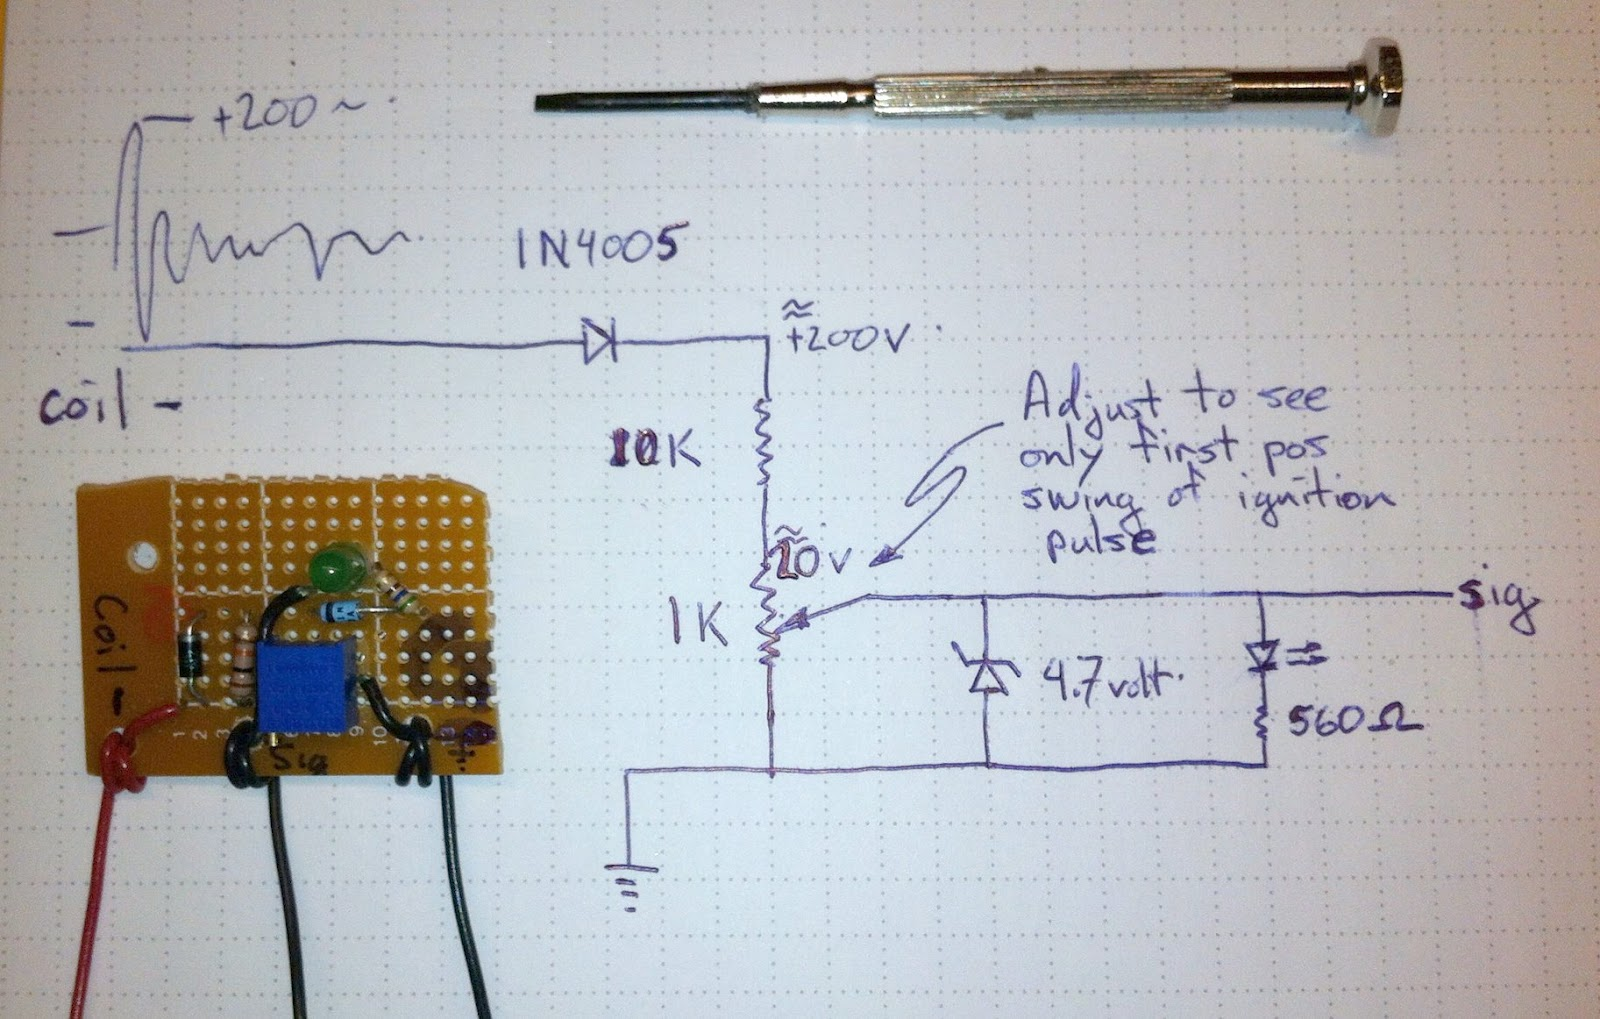 With help from http://www.arduino.cc/cgi-bin/yabb2/YaBB.pl?num=1262397180 I  came up with this circuit to produce countable pulses.